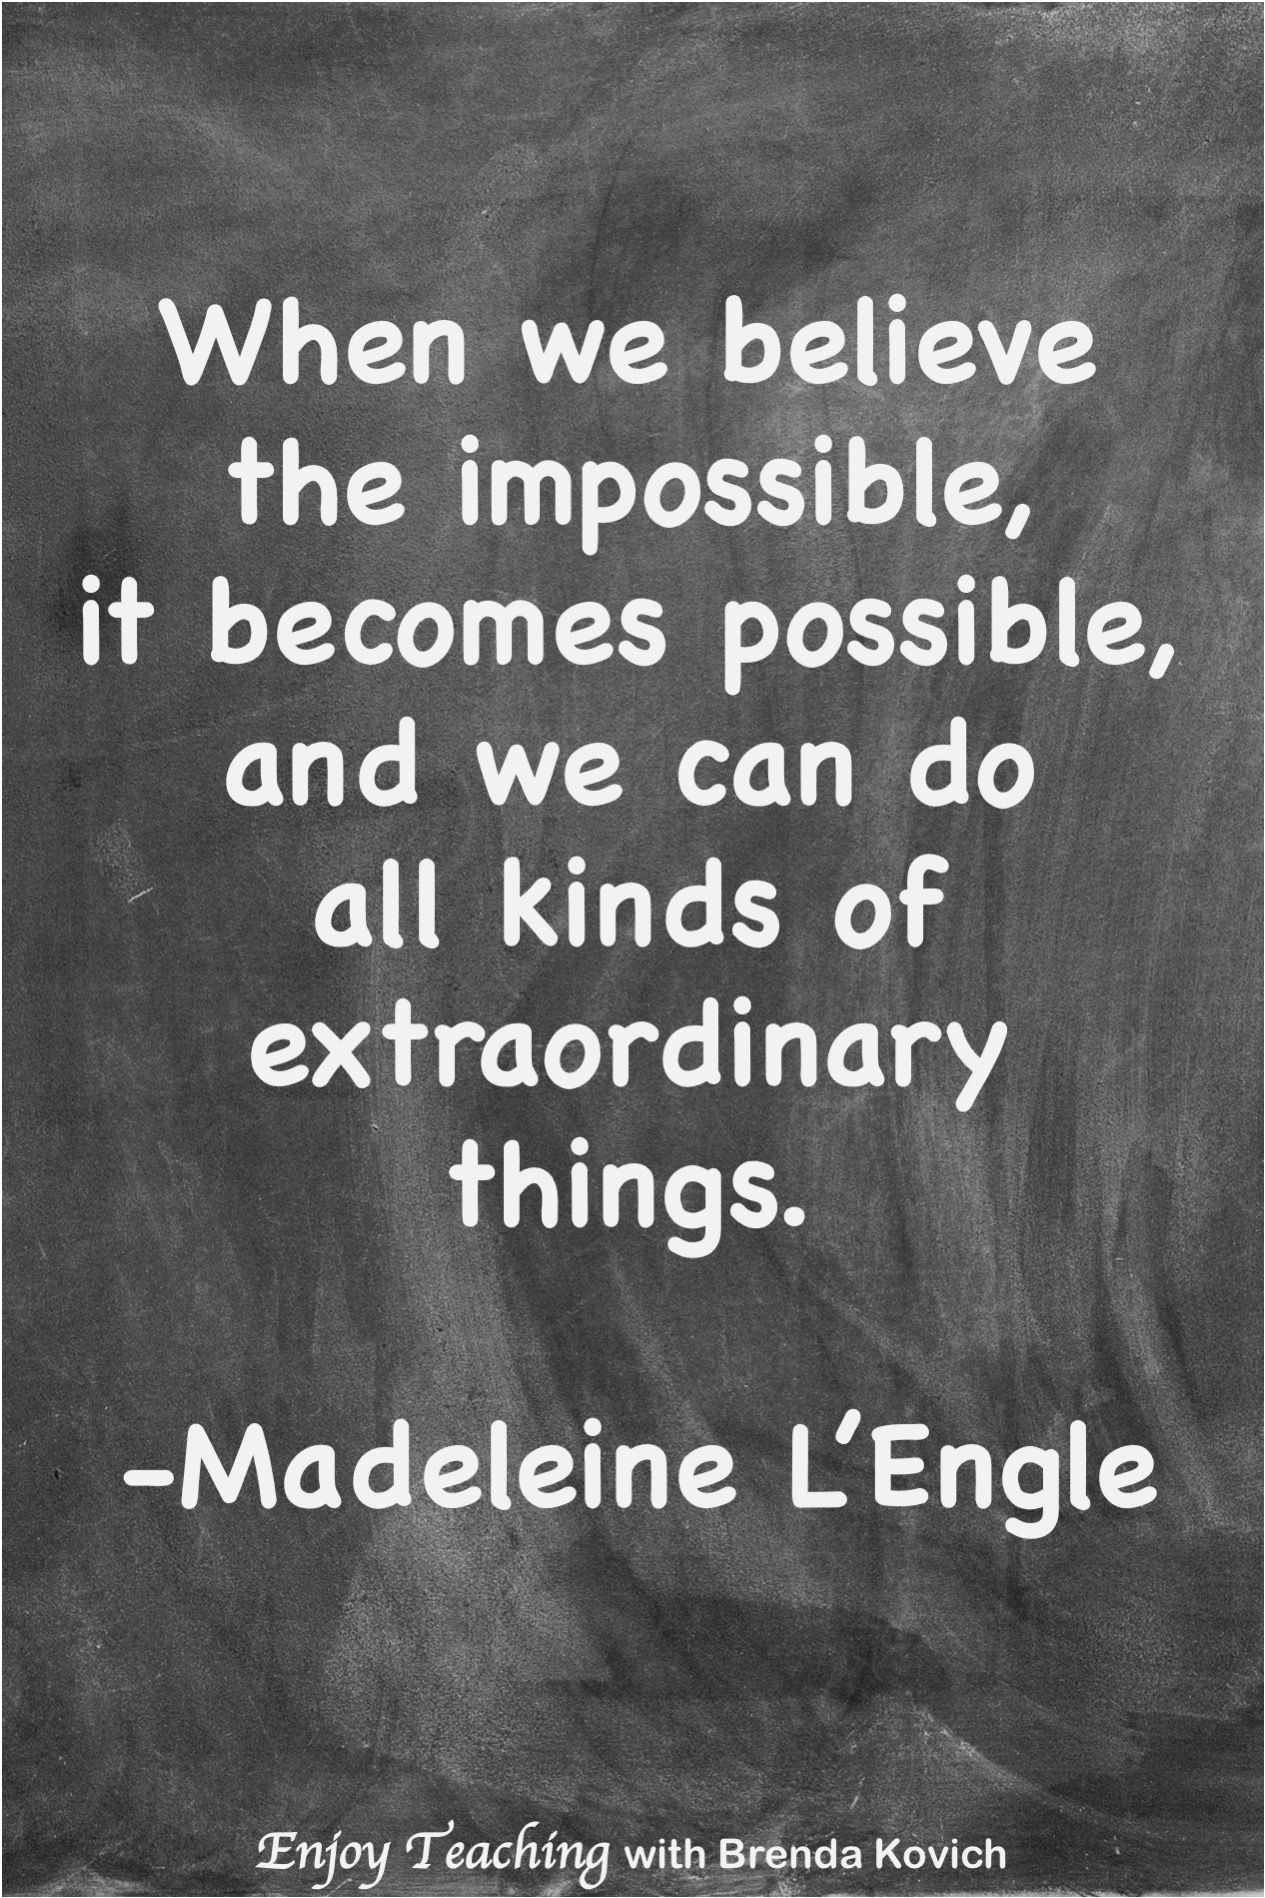 Inspirational Teaching Quote by Madeleine L'Engle - Enjoy Teaching